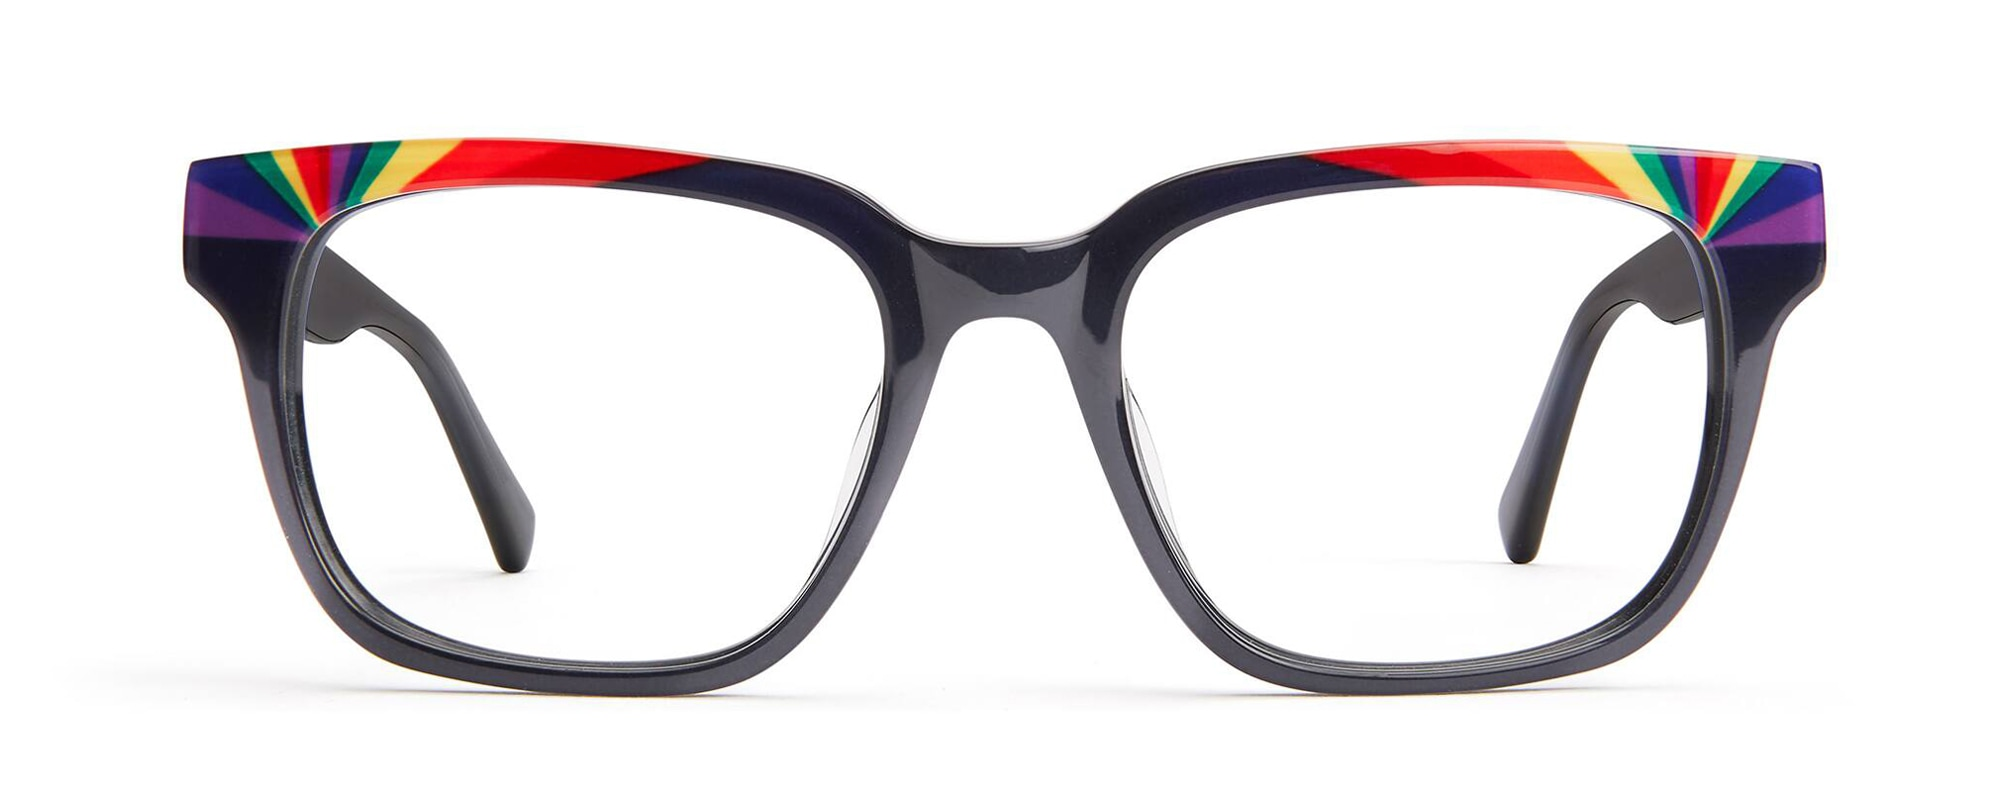 Front view of Square Glasses in rainbow #4439916